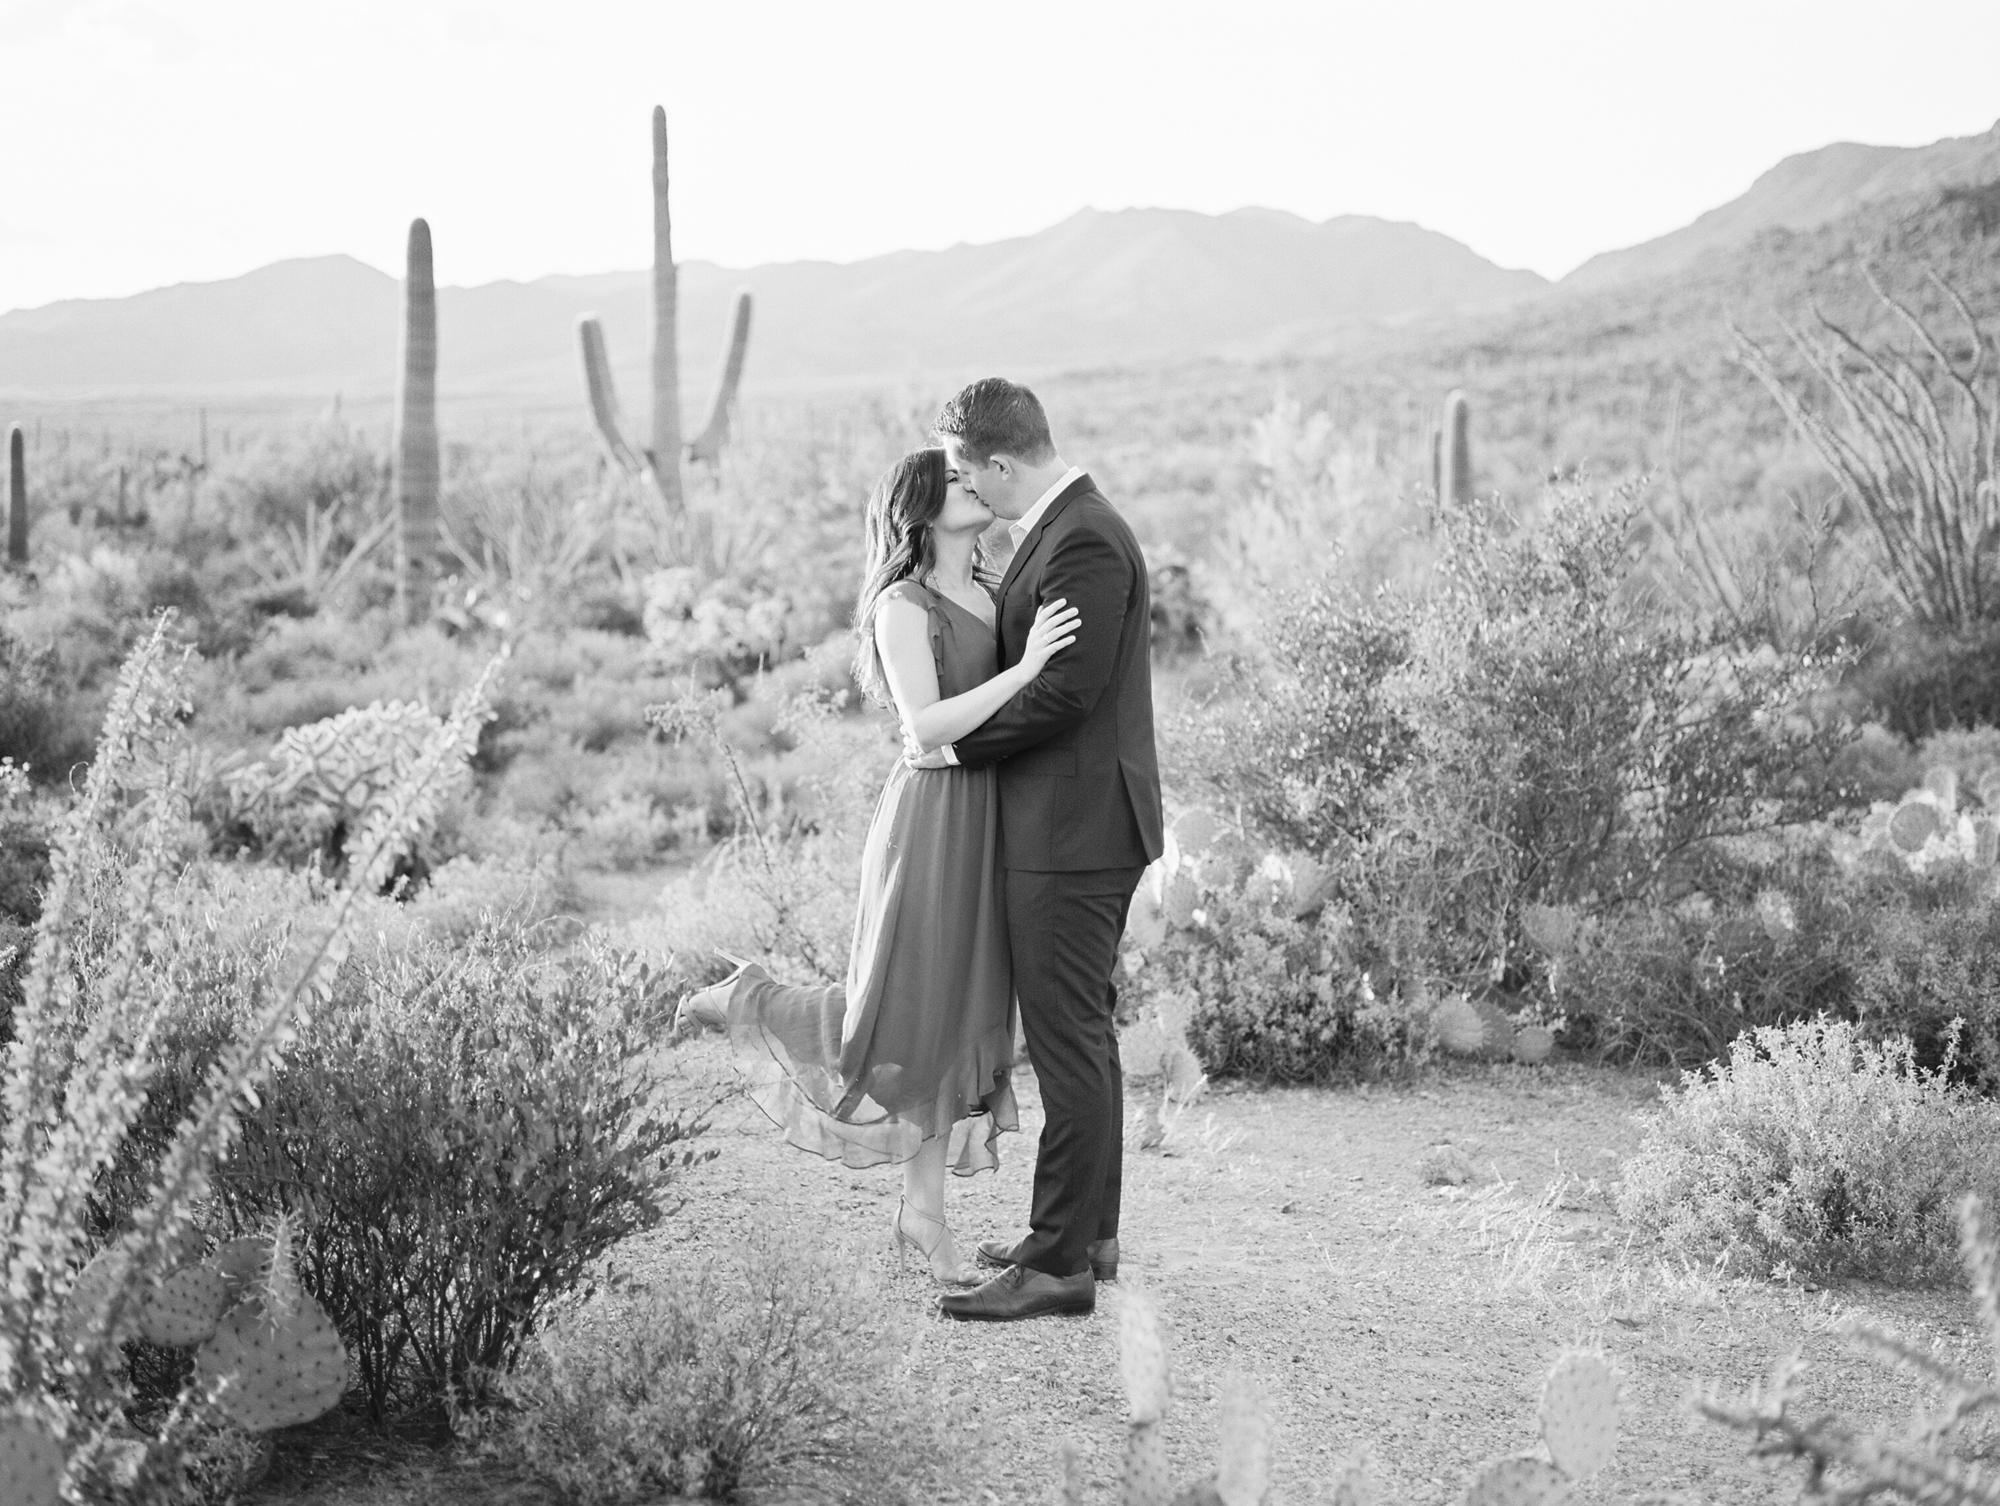 How sweet is this couple kissing in the desert?! This beautiful desert view is to die for and that leg pop is adorable. We love black and white photos, they are so romantic!